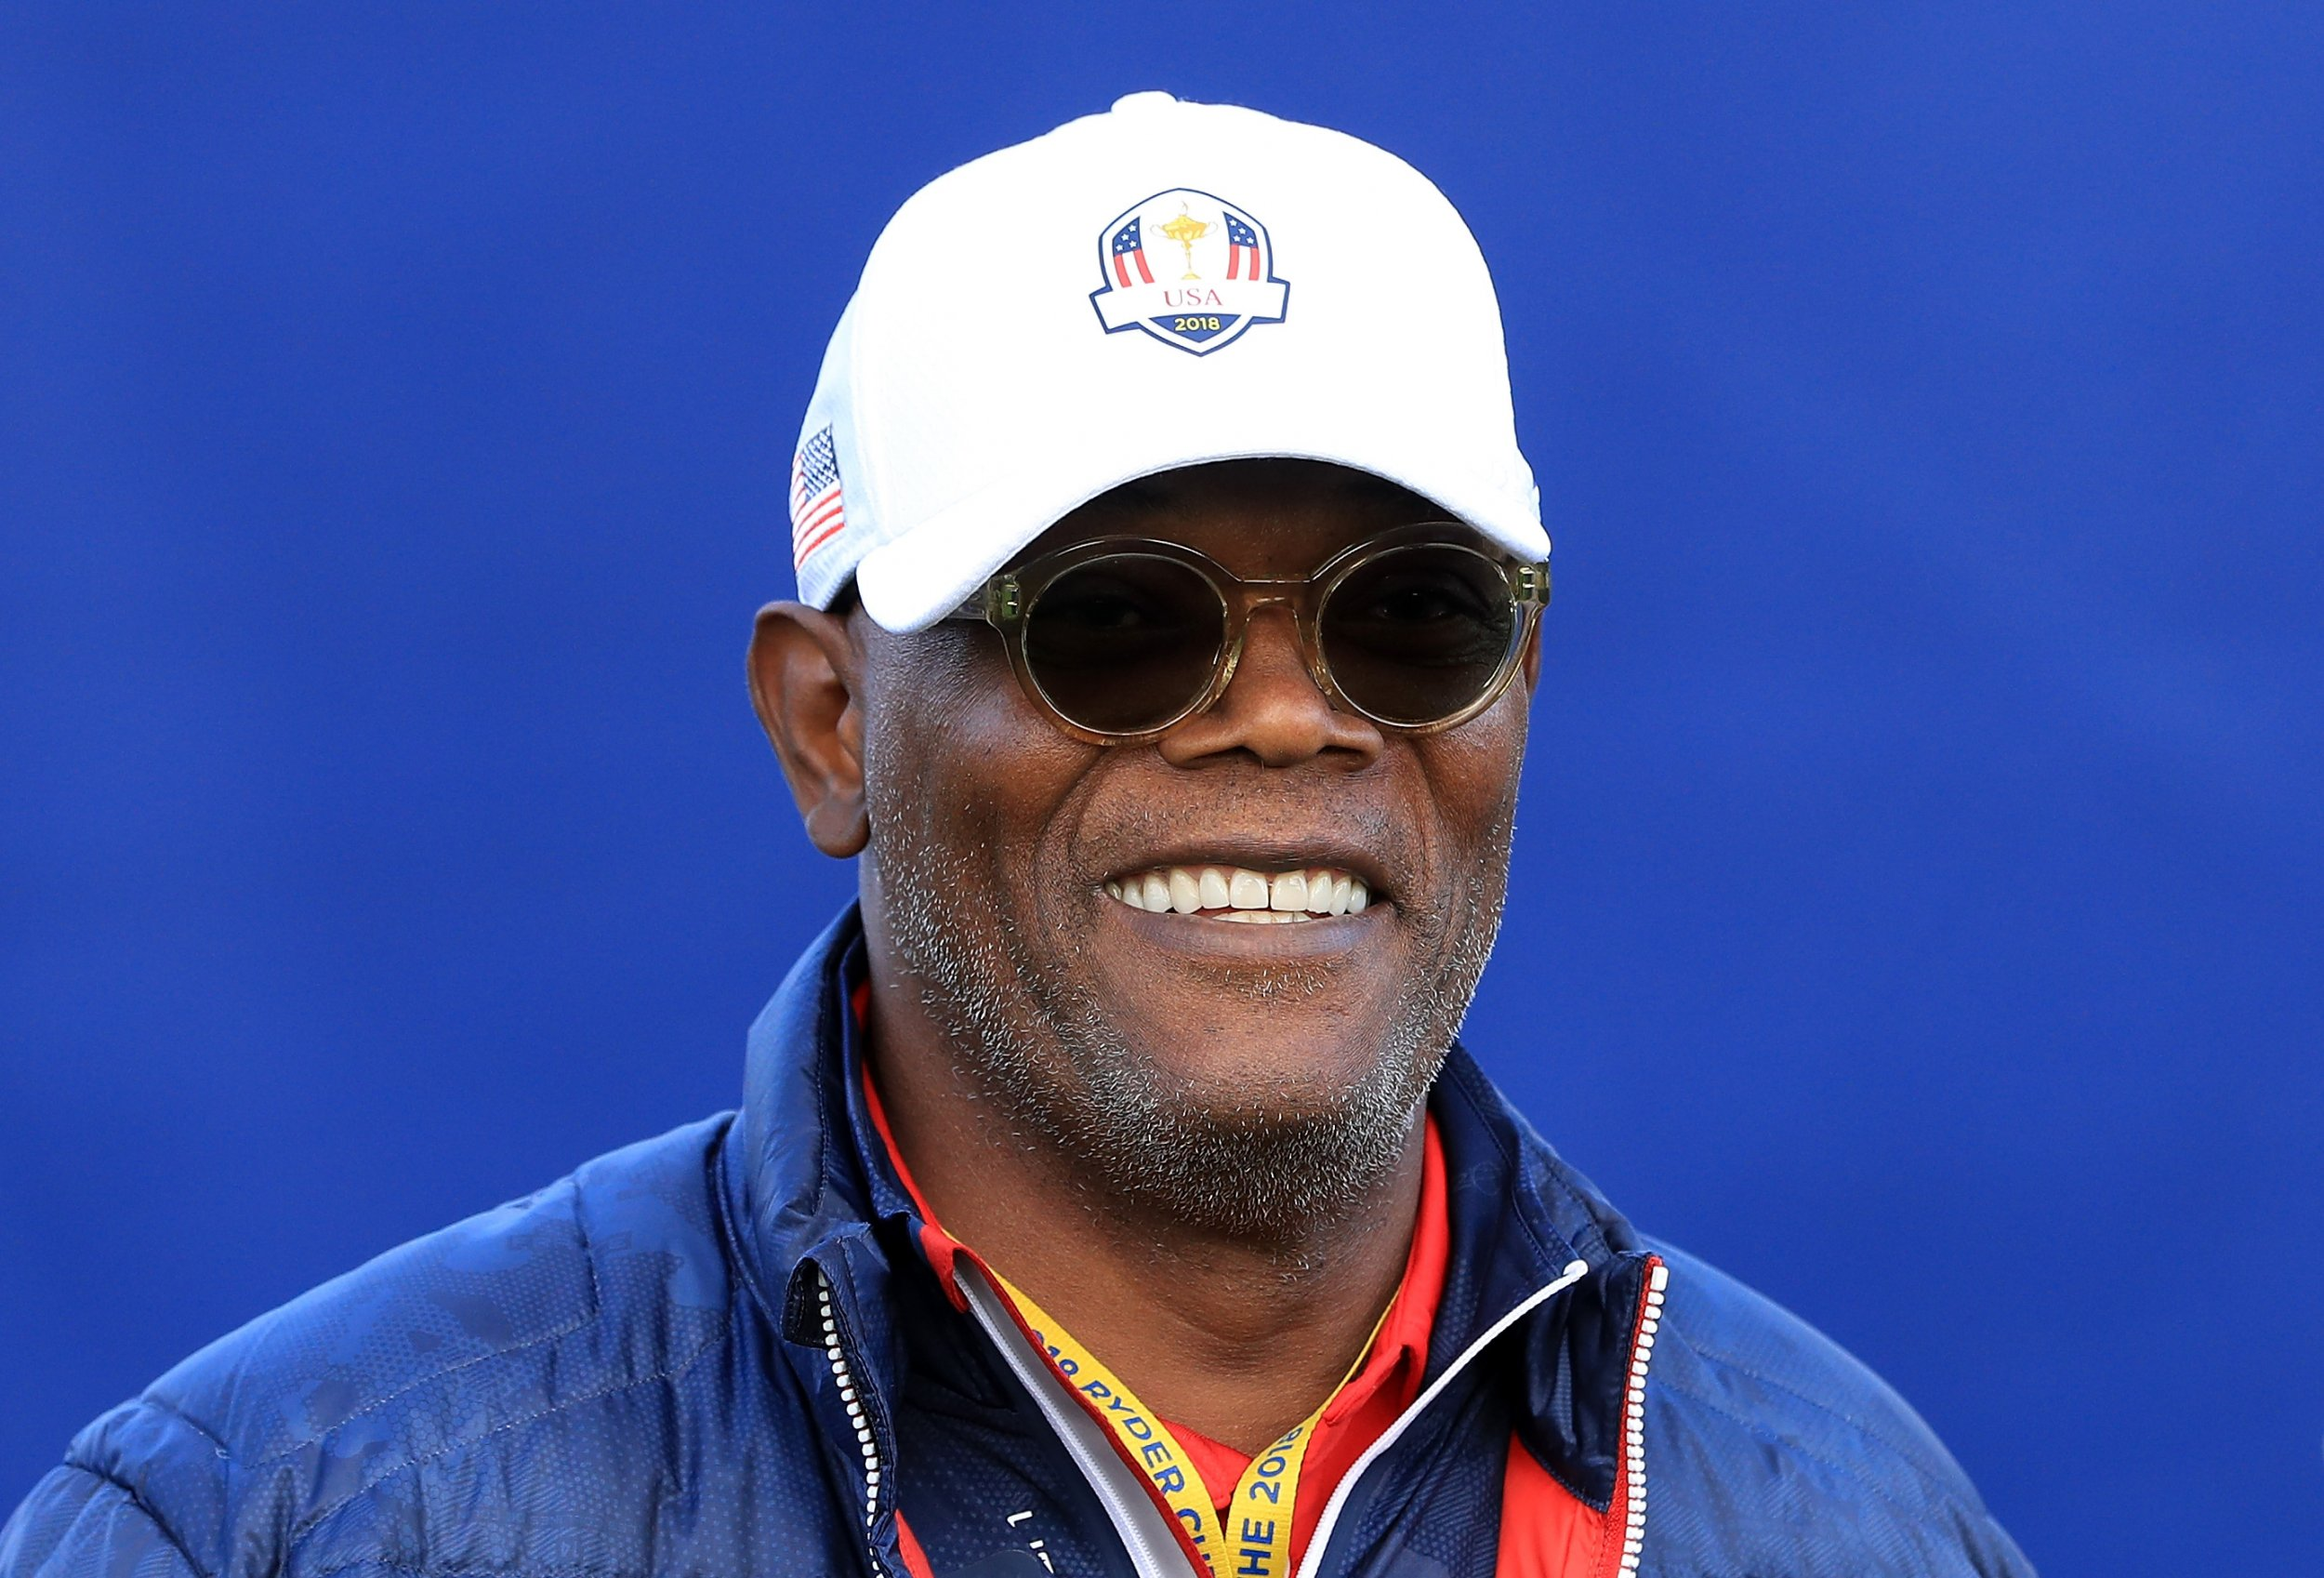 Samuel L Jackson Wants Voters to Volunteer This Fall